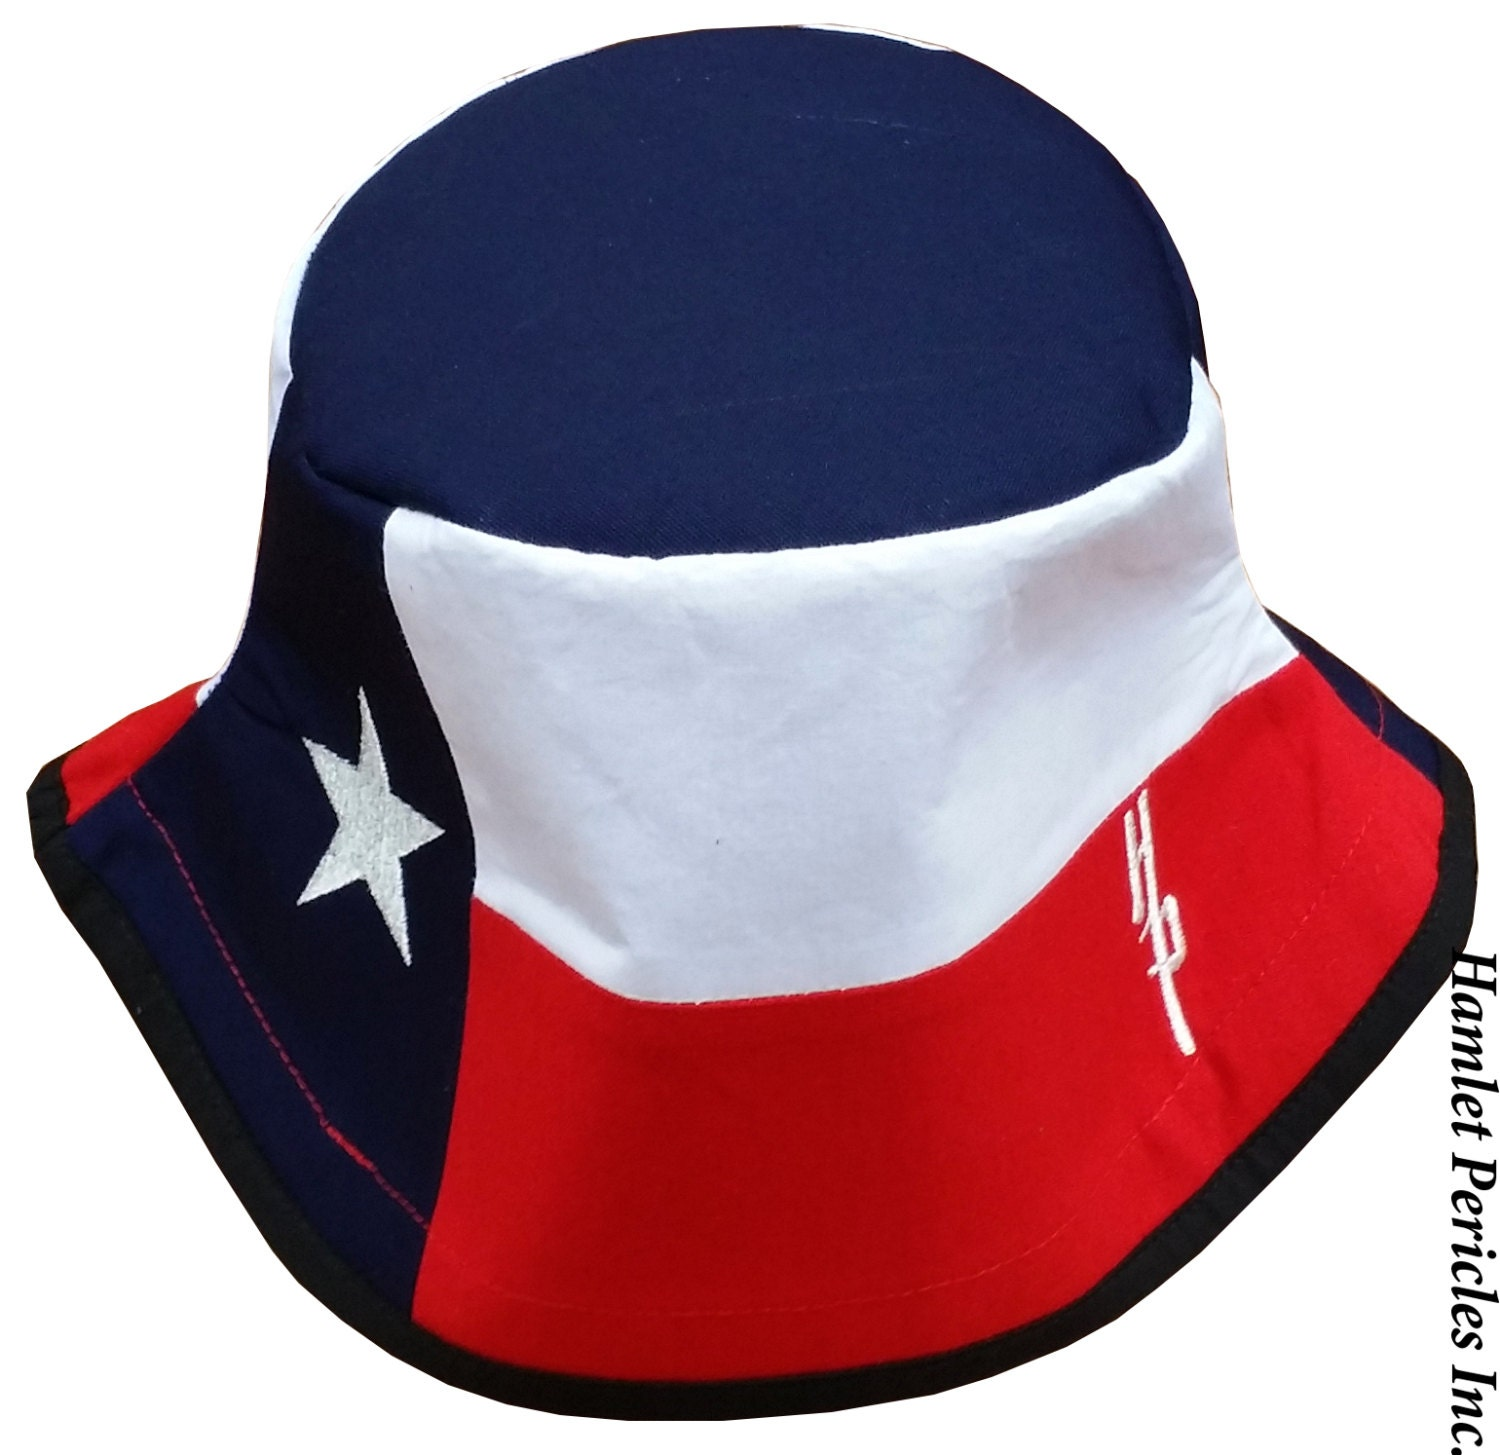 847a1f7157a Texas state flag blue top bucket hat texas flag etsy jpg 1500x1455 Custom puerto  rican bucekt